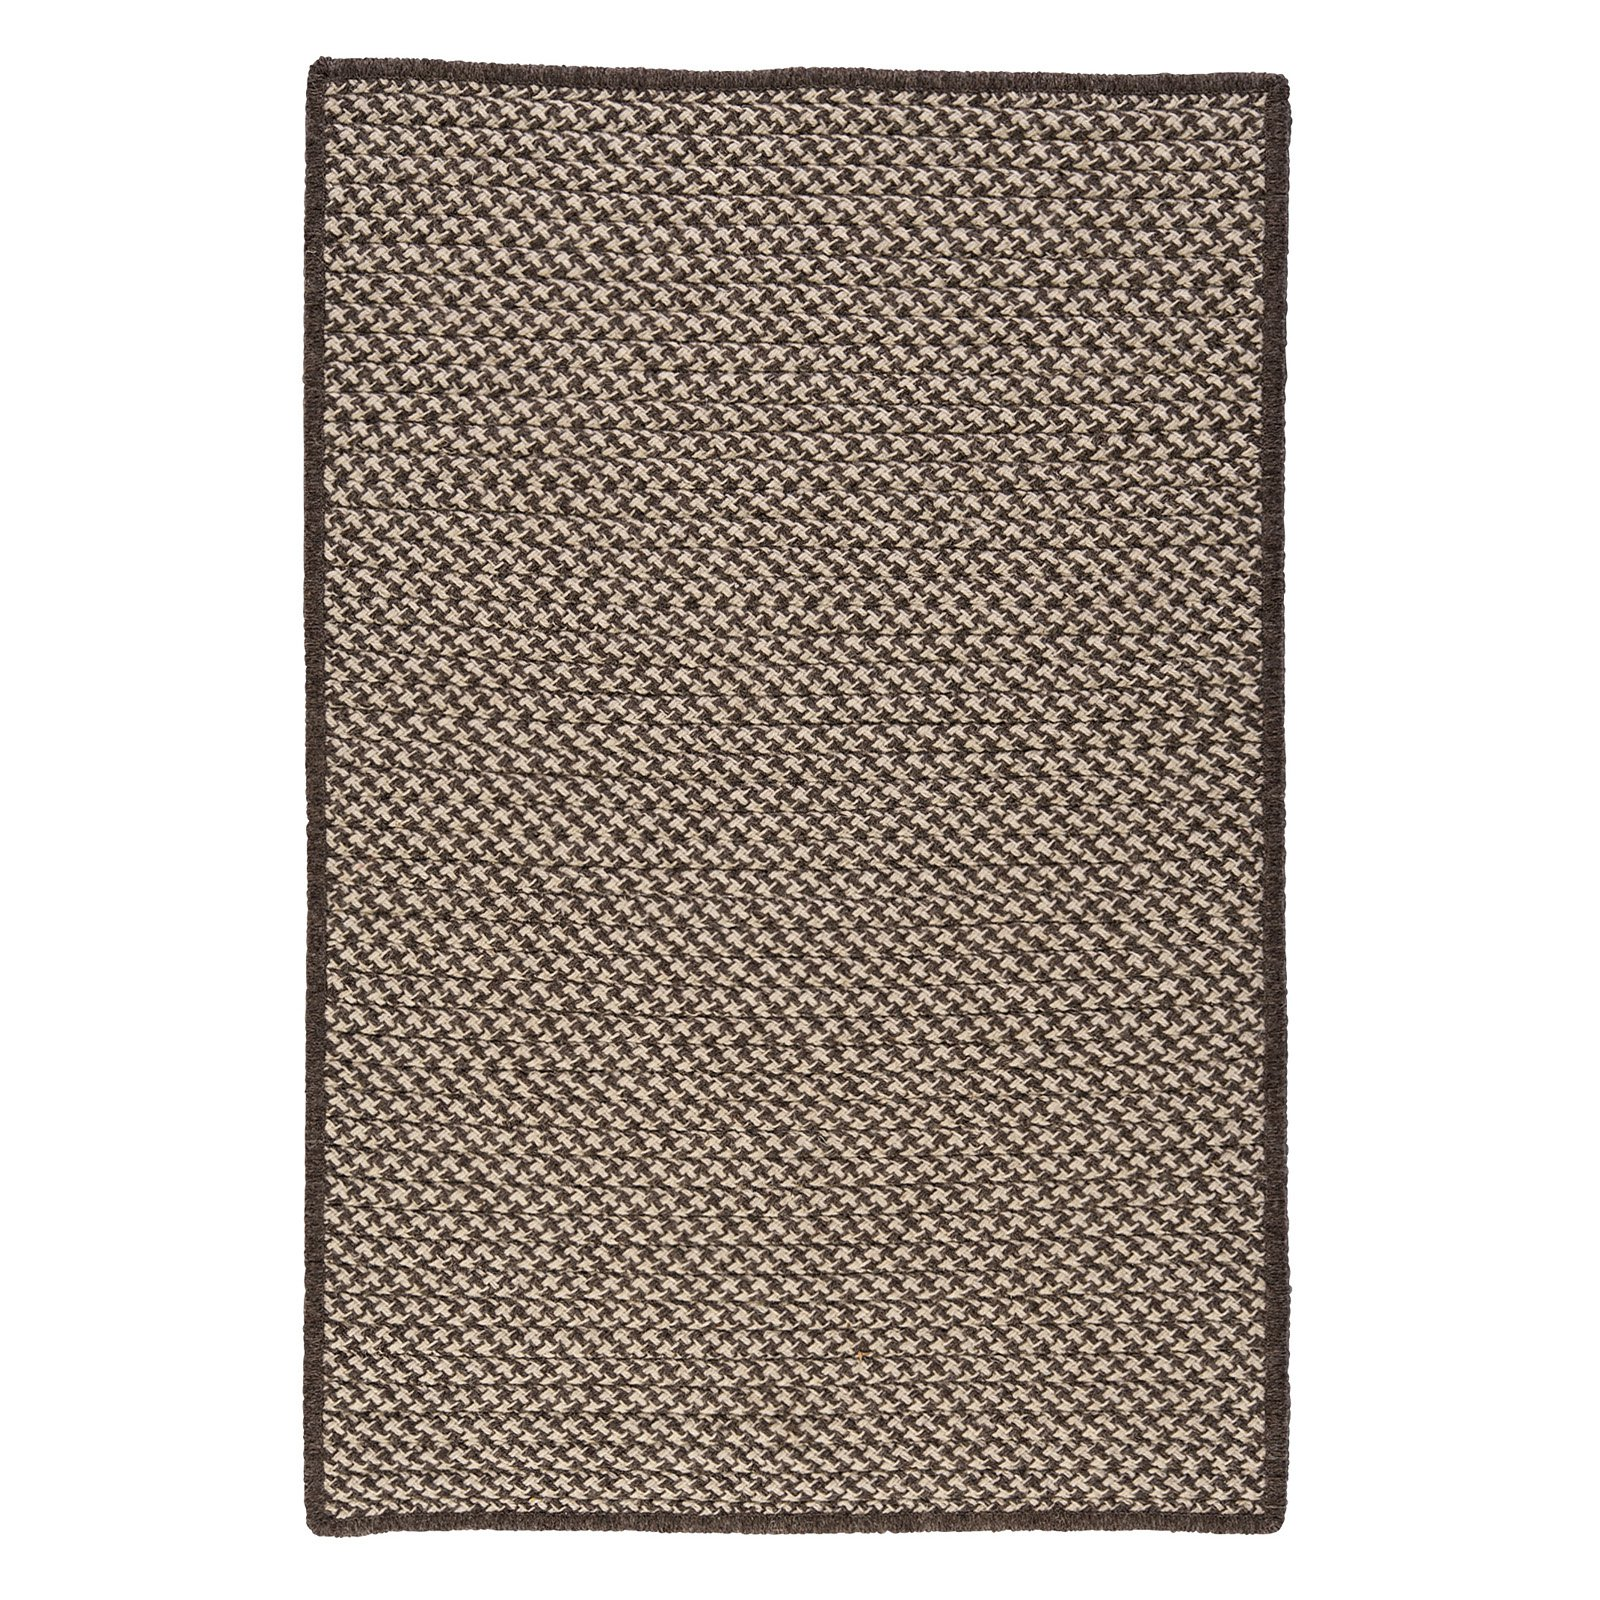 Colonial Mills Natural Wool Houndstooth Braided Area Rug